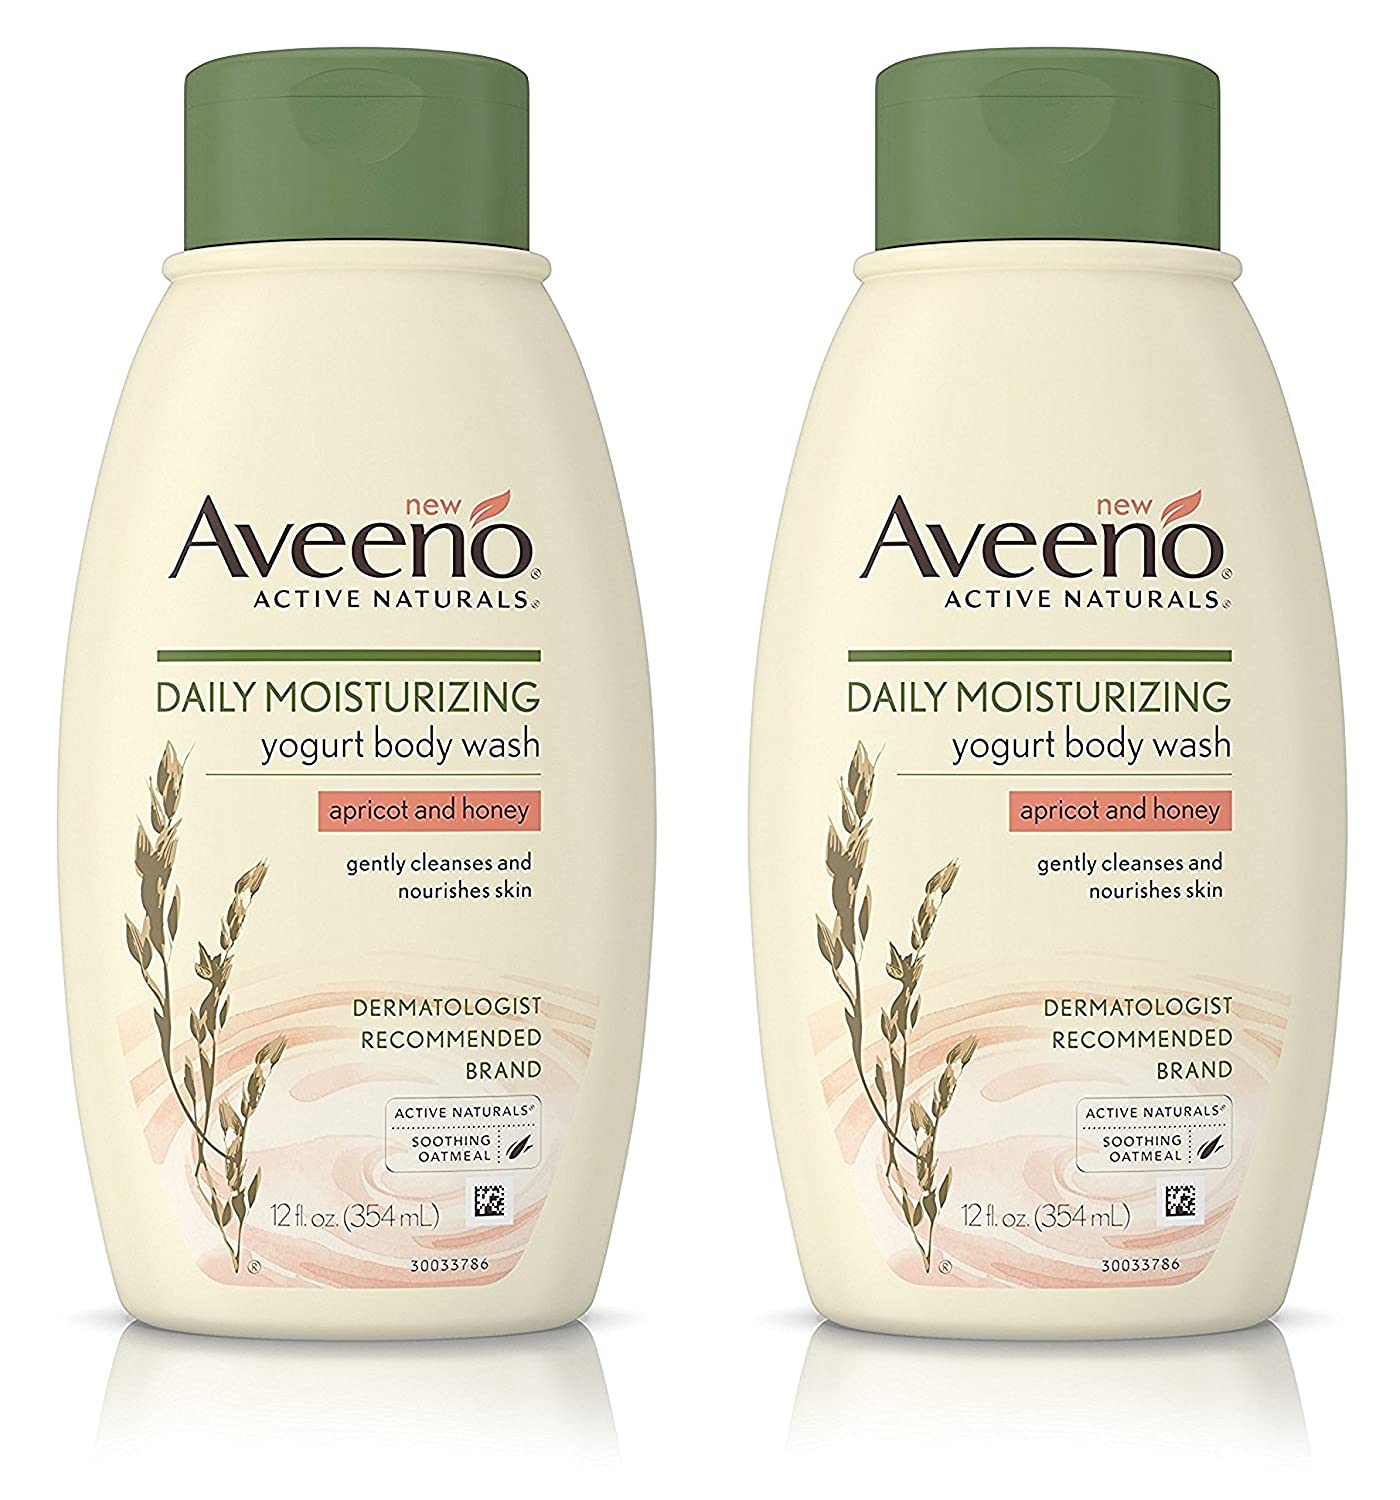 Aveeno Active Naturals Yogurt Body Wash - Apricot & Honey - Net Wt. 12 FL OZ (354 mL) Per Bottle - Pack of 2 Bottles